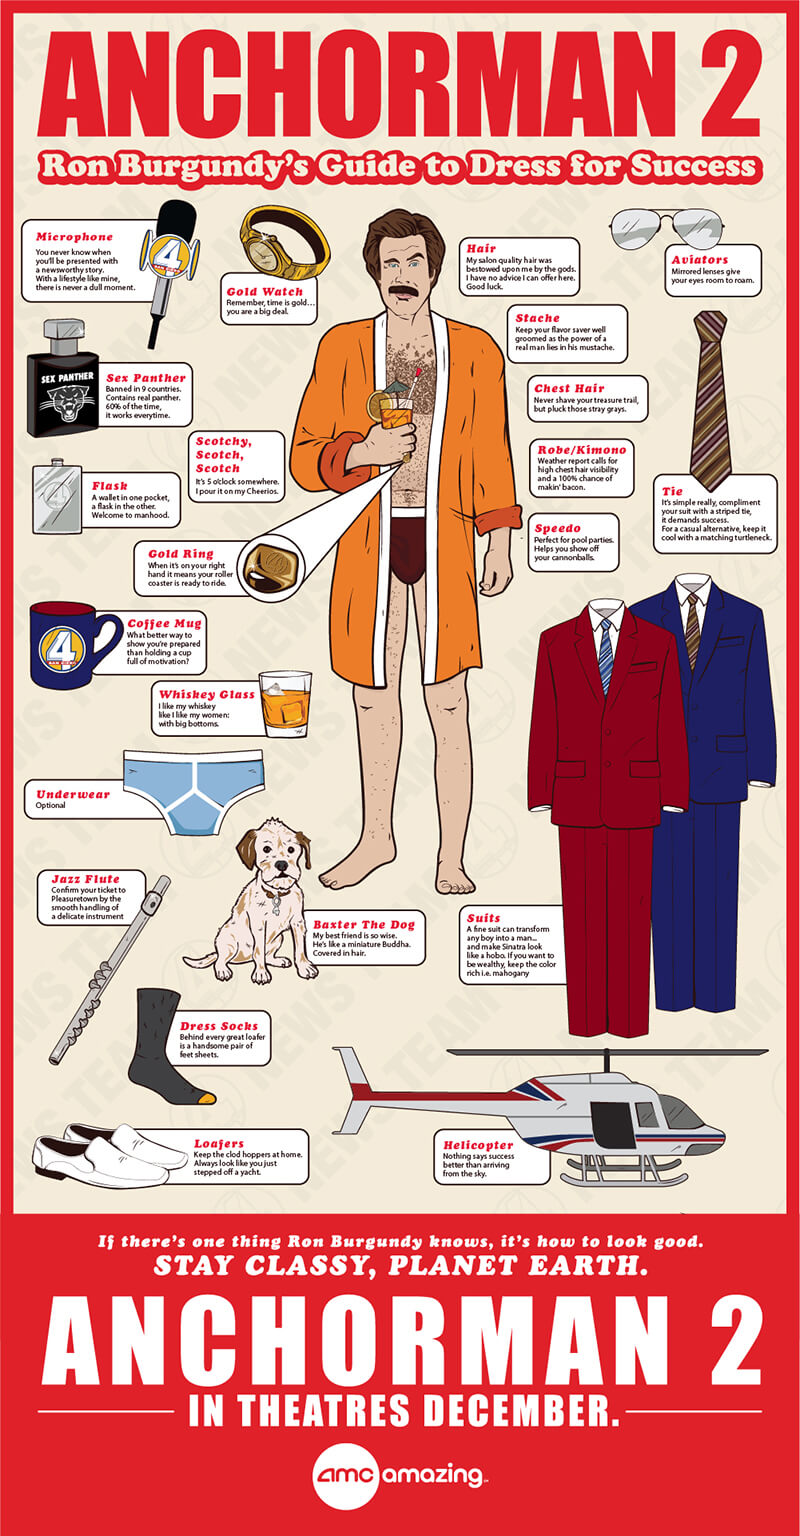 MattTurney_AnchorMan2_Infographic